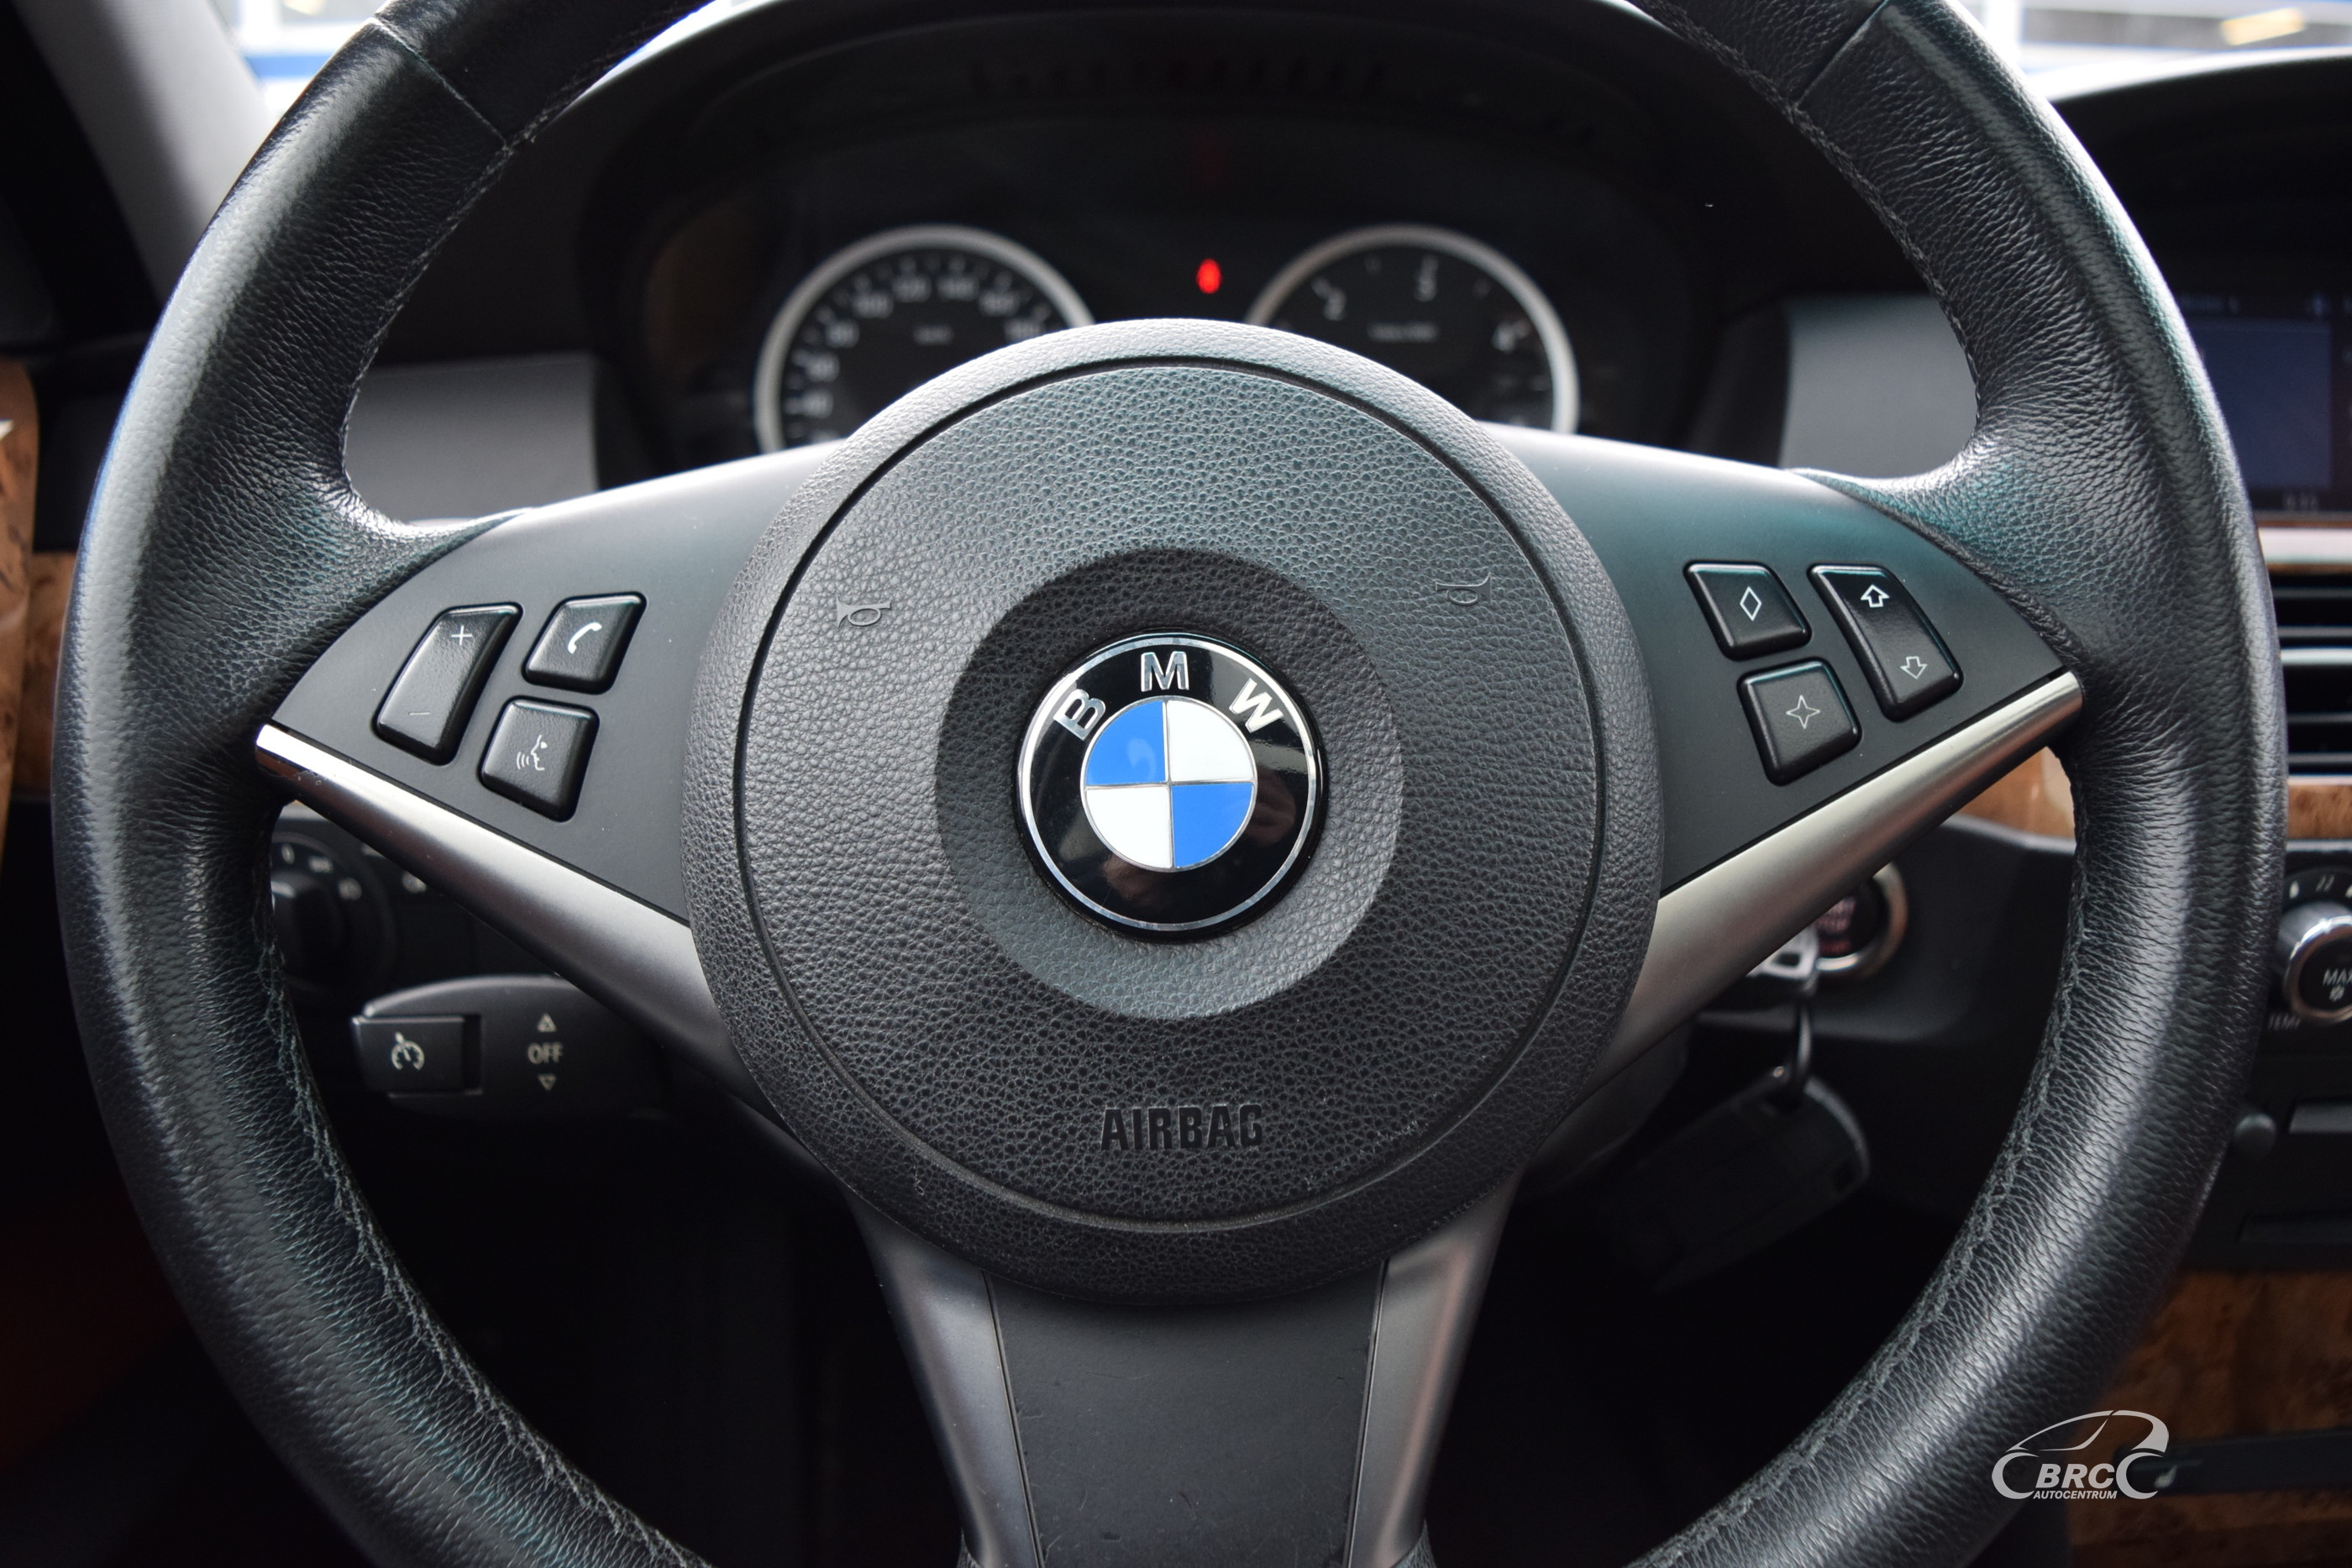 BMW 530 xd Touring A/T